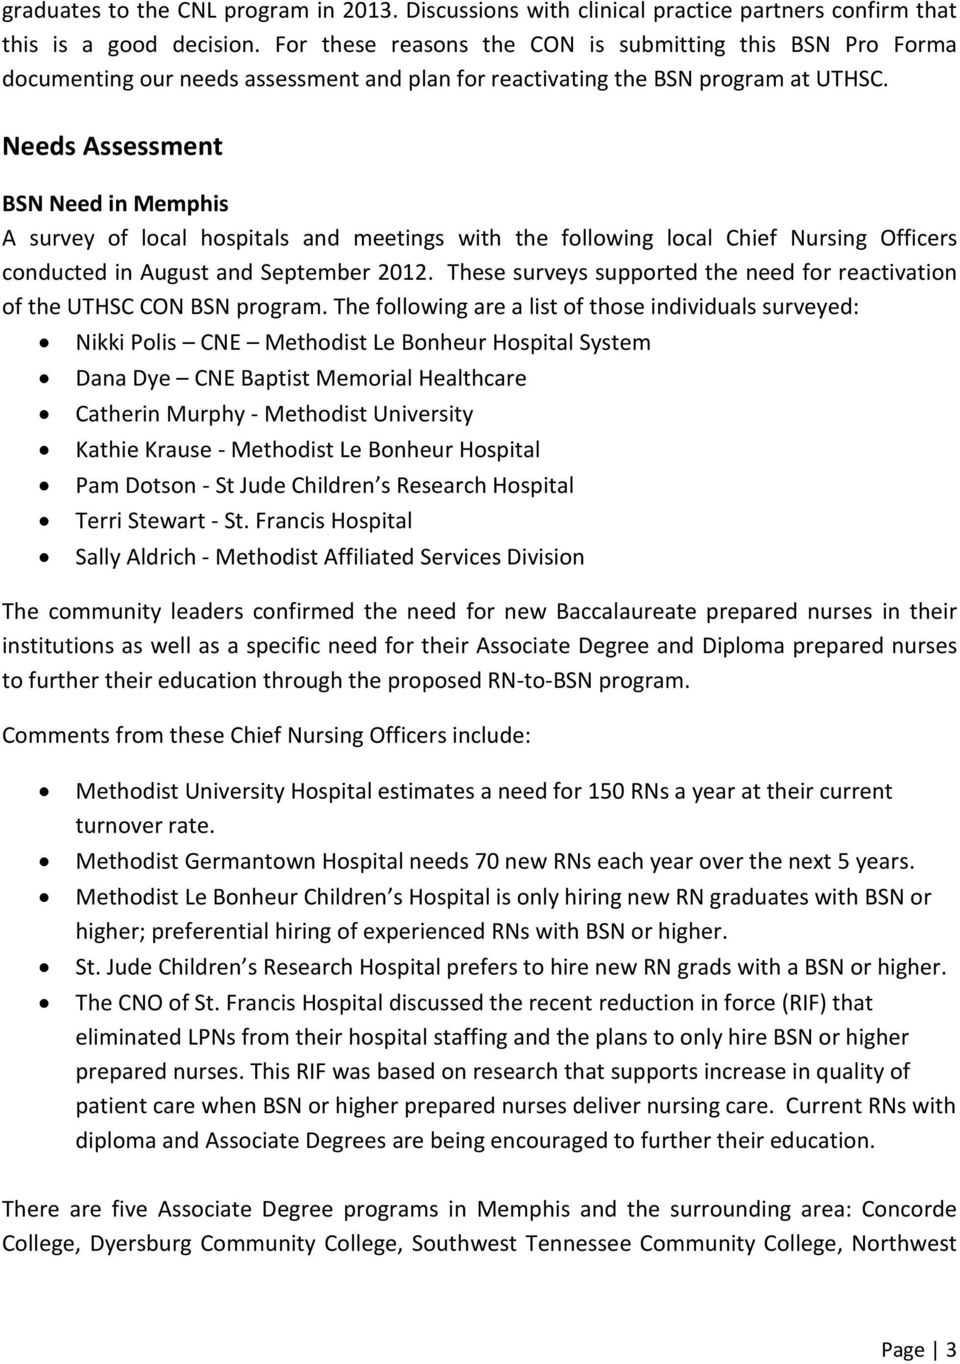 Needs Assessment BSN Need in Memphis A survey of local hospitals and meetings with the following local Chief Nursing Officers conducted in August and September 2012.